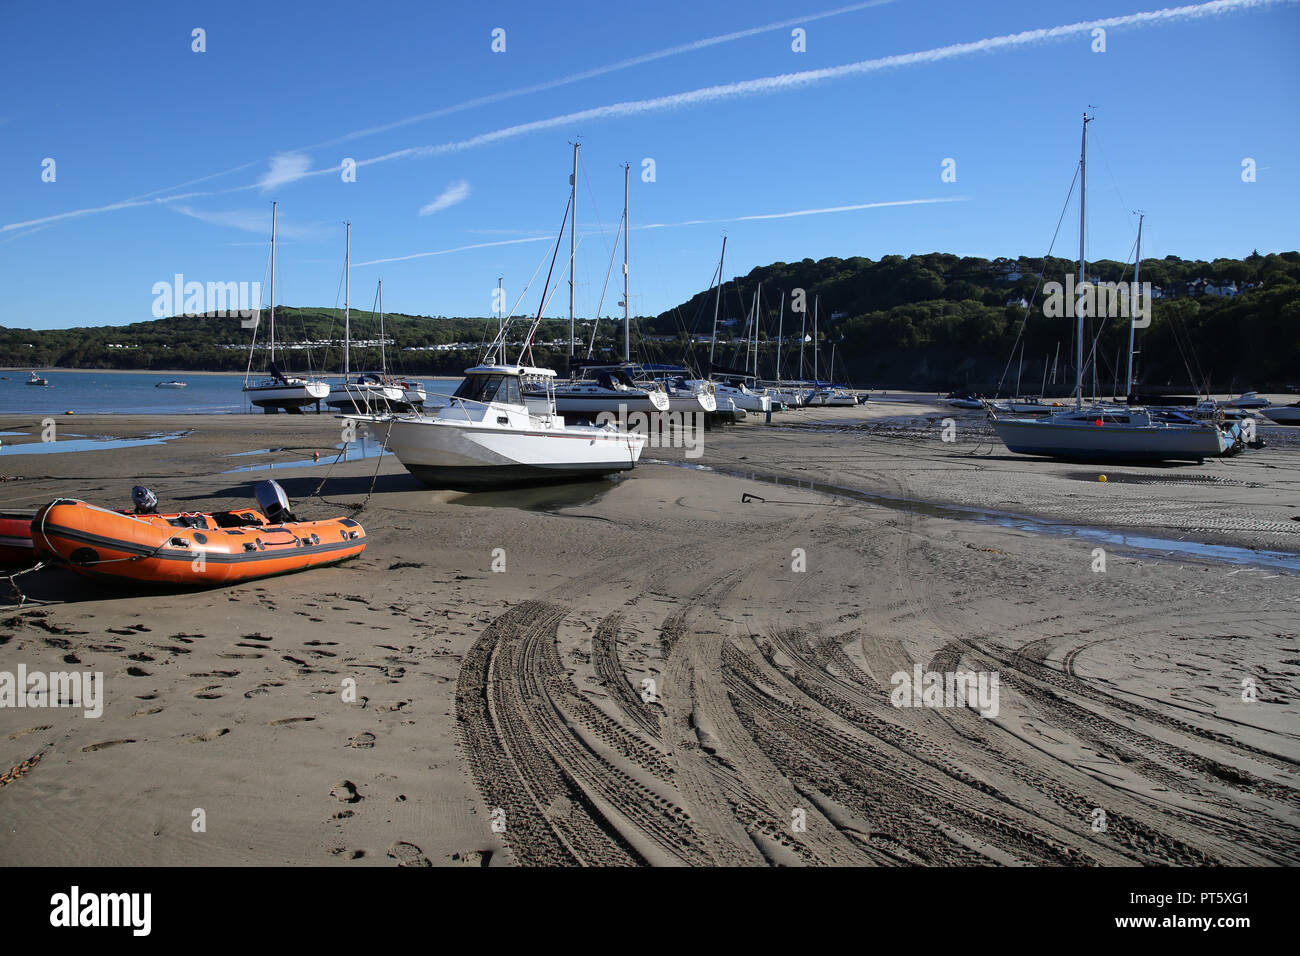 Boats and Yachts on the beach at New Quay, Ceredigion, Wales. Photograph taken 27th September 2018 - Stock Image